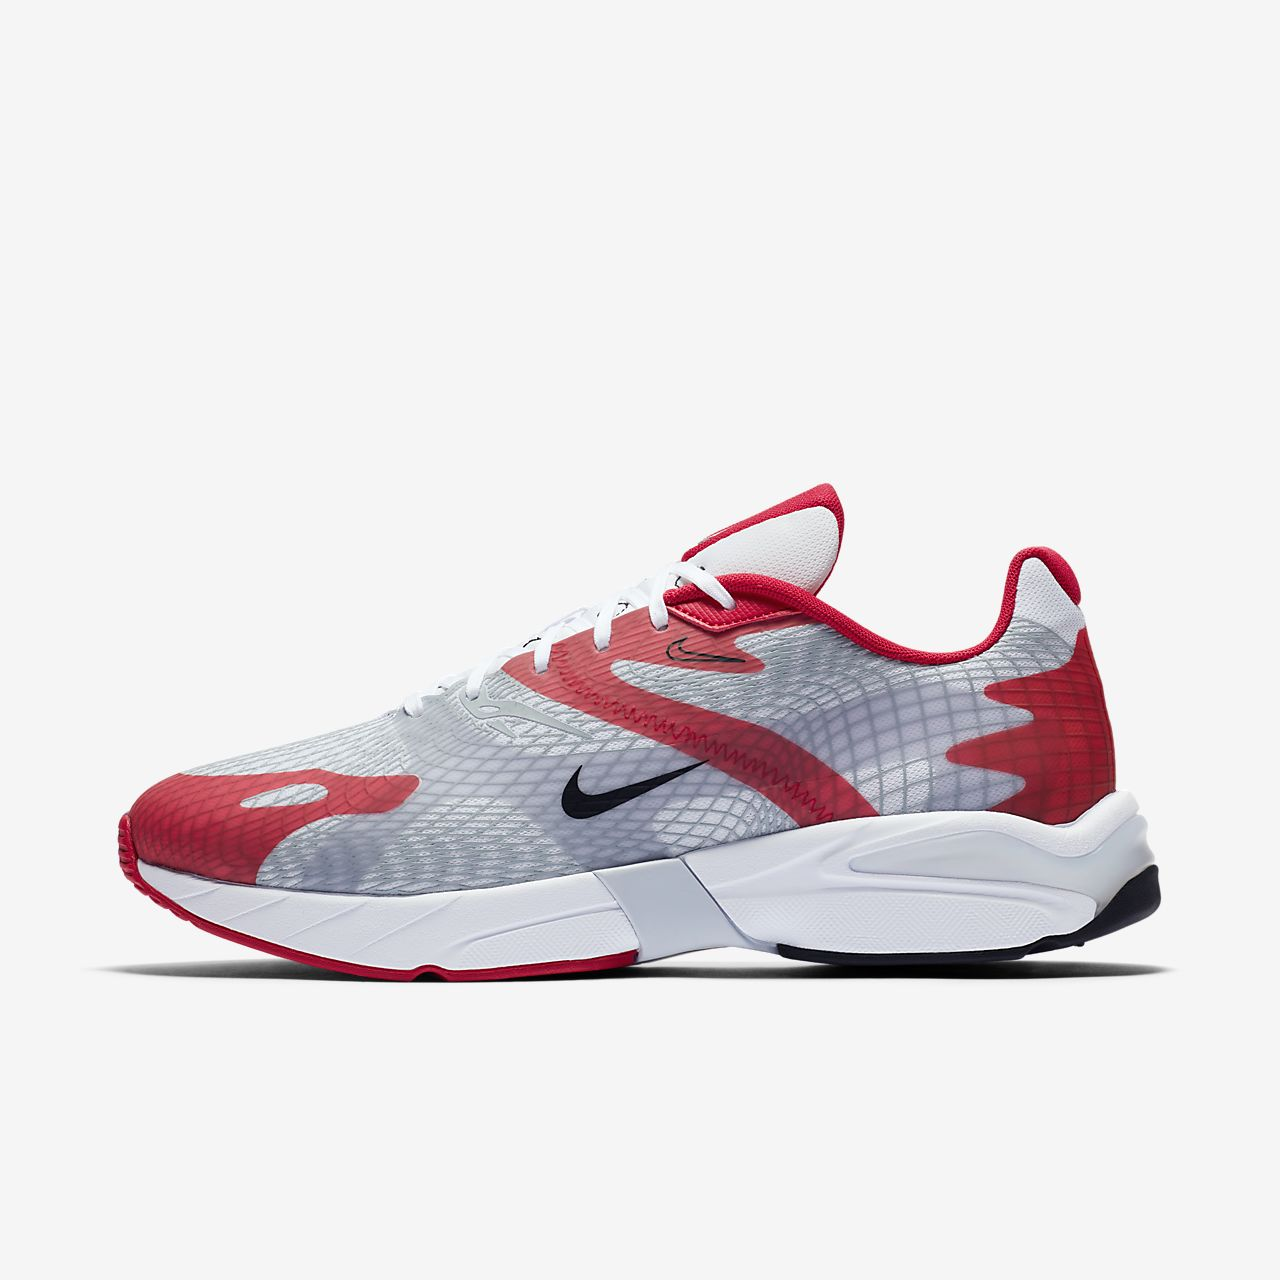 Chaussure Nike Ghoswift pour Homme